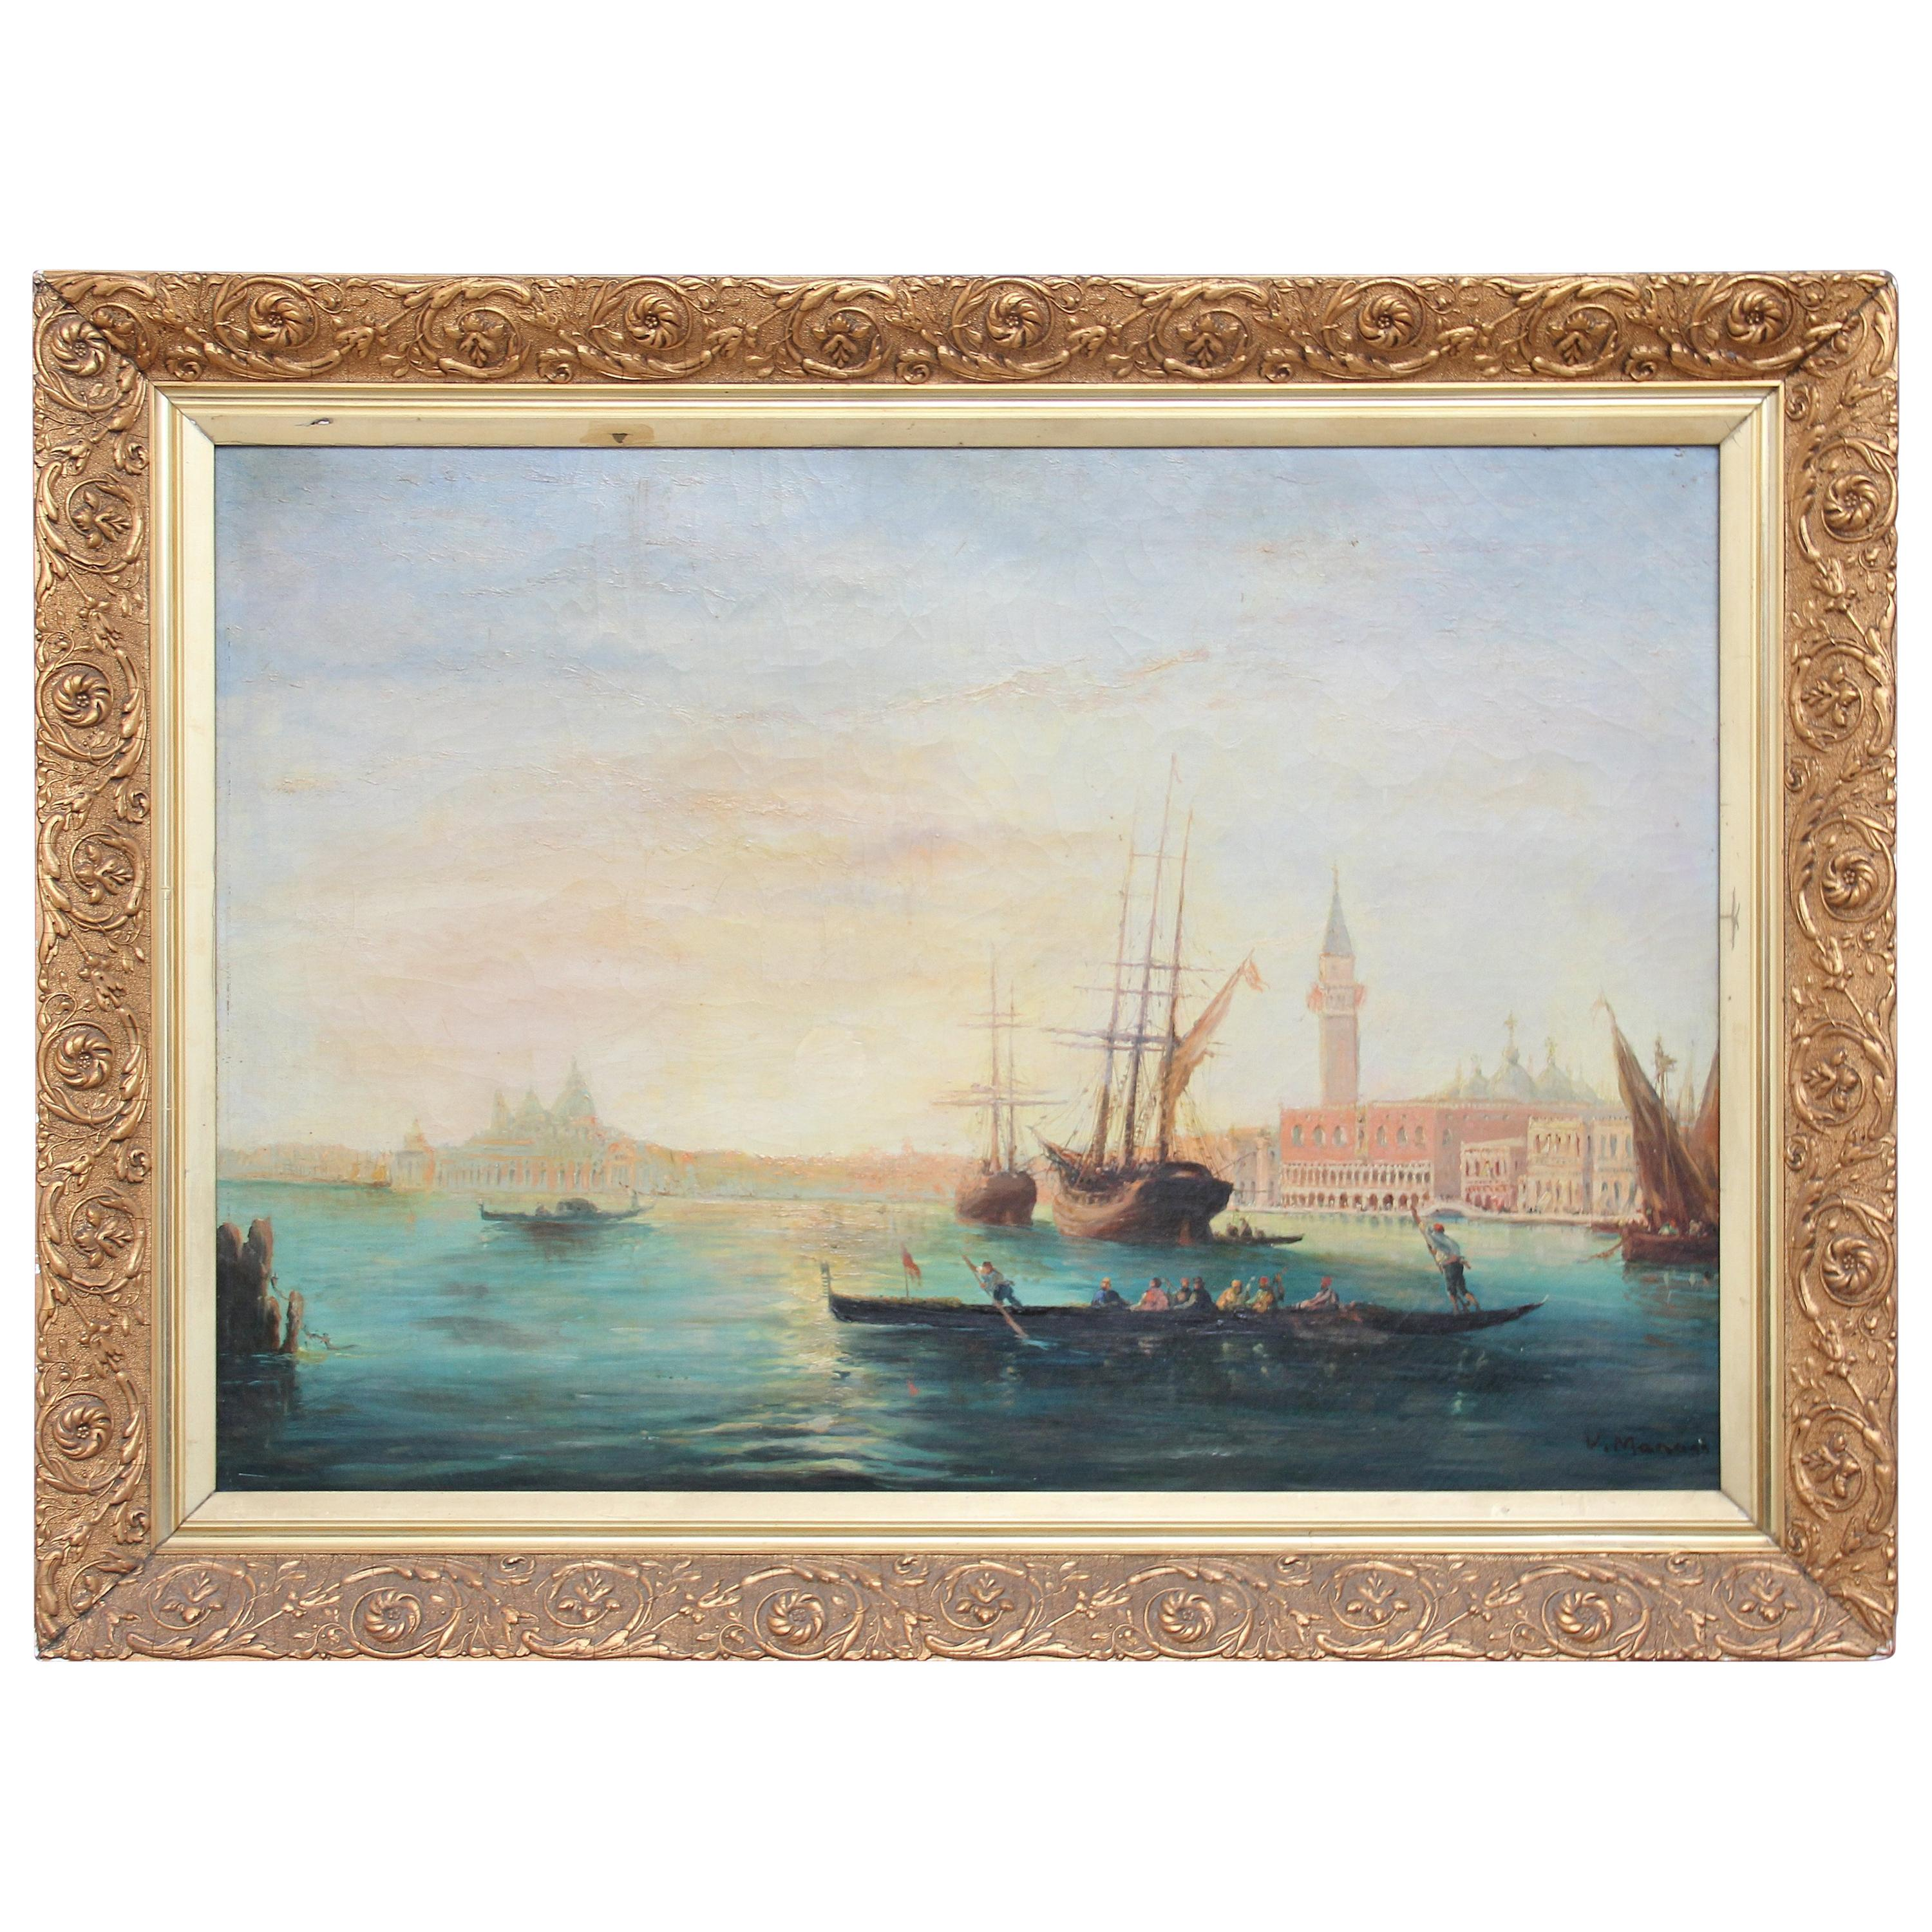 Early 20th Century Oil Painting of the Venetian Lagoon